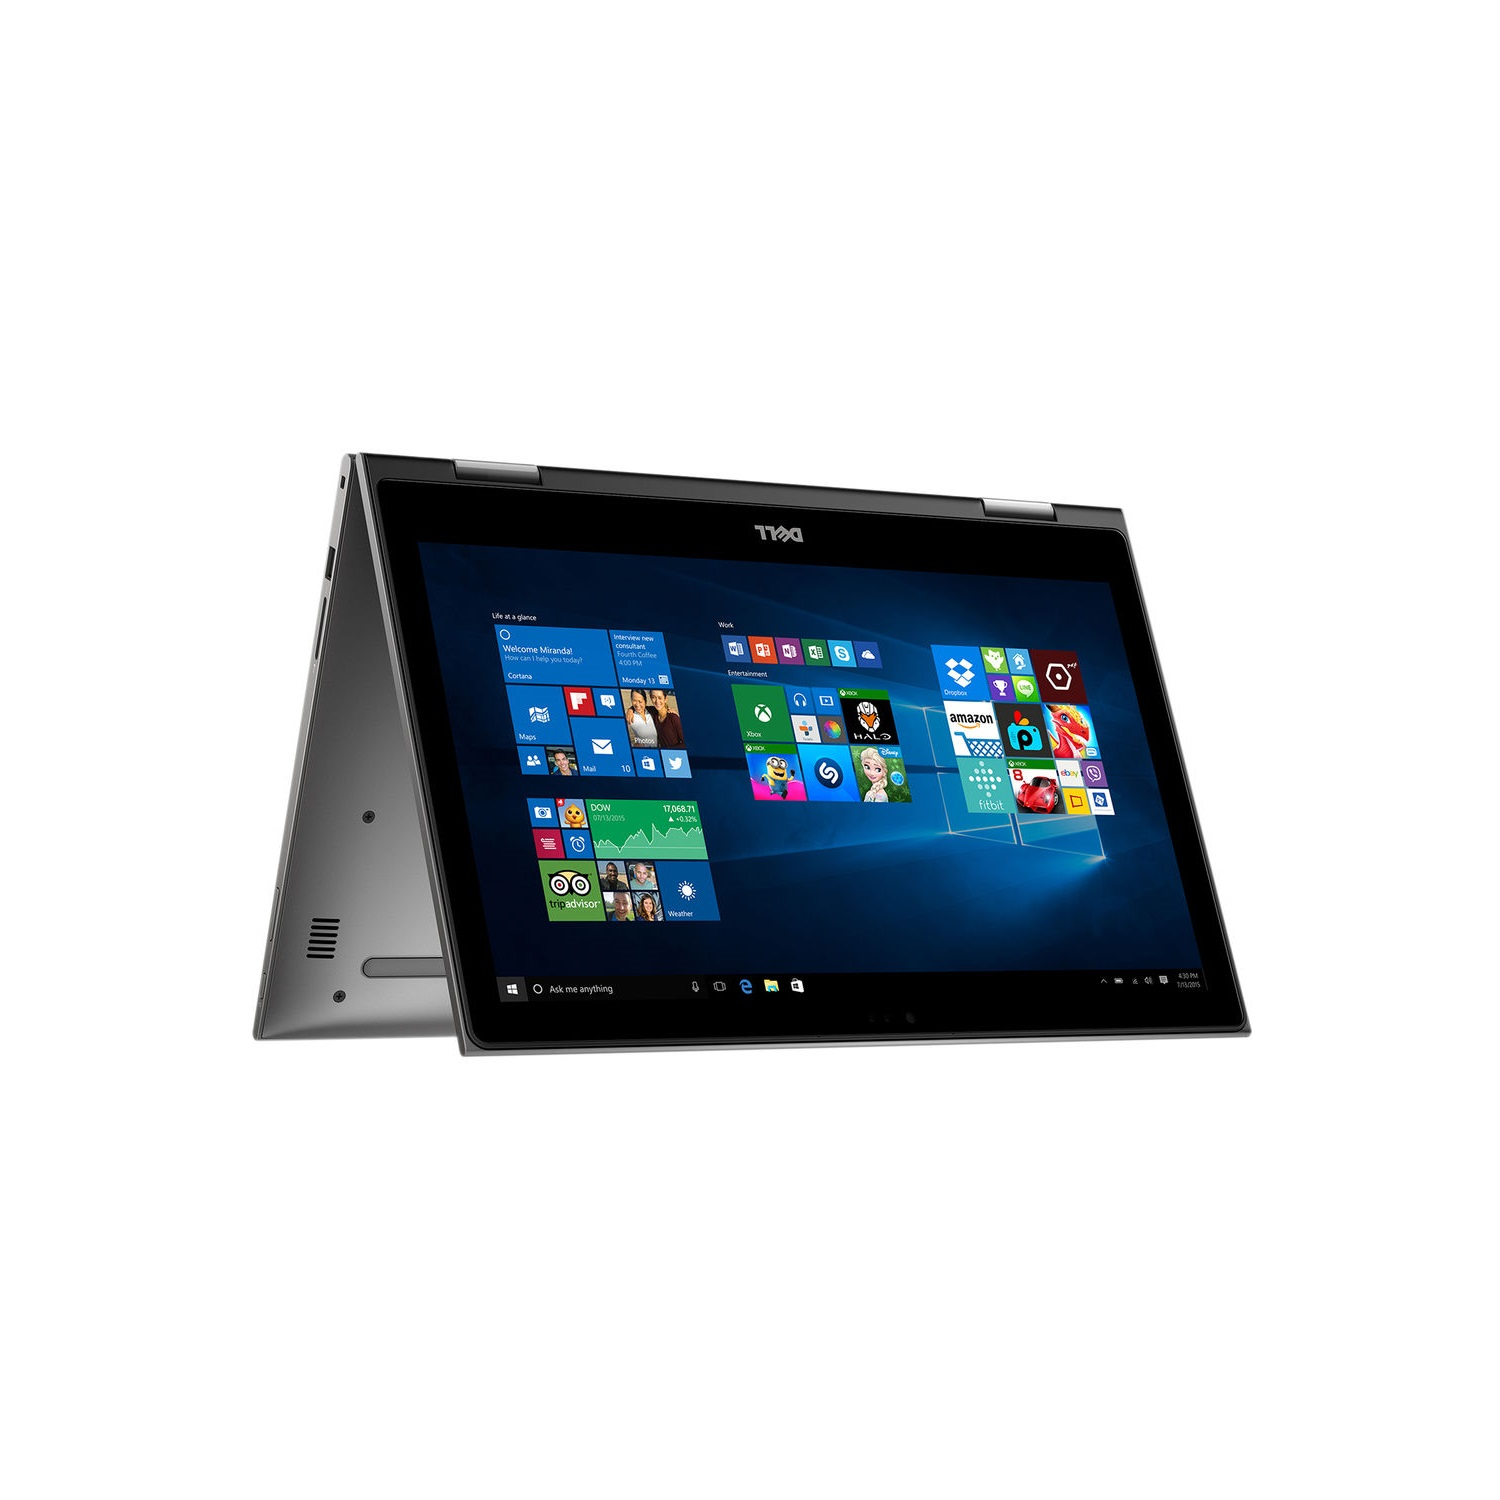 "Dell I55783093GRY Inspiron 2-in-1 15.6"" Touch-Screen Laptop Intel Core i3 4GB Memory 500GB Hard Drive Theoretical Gray"